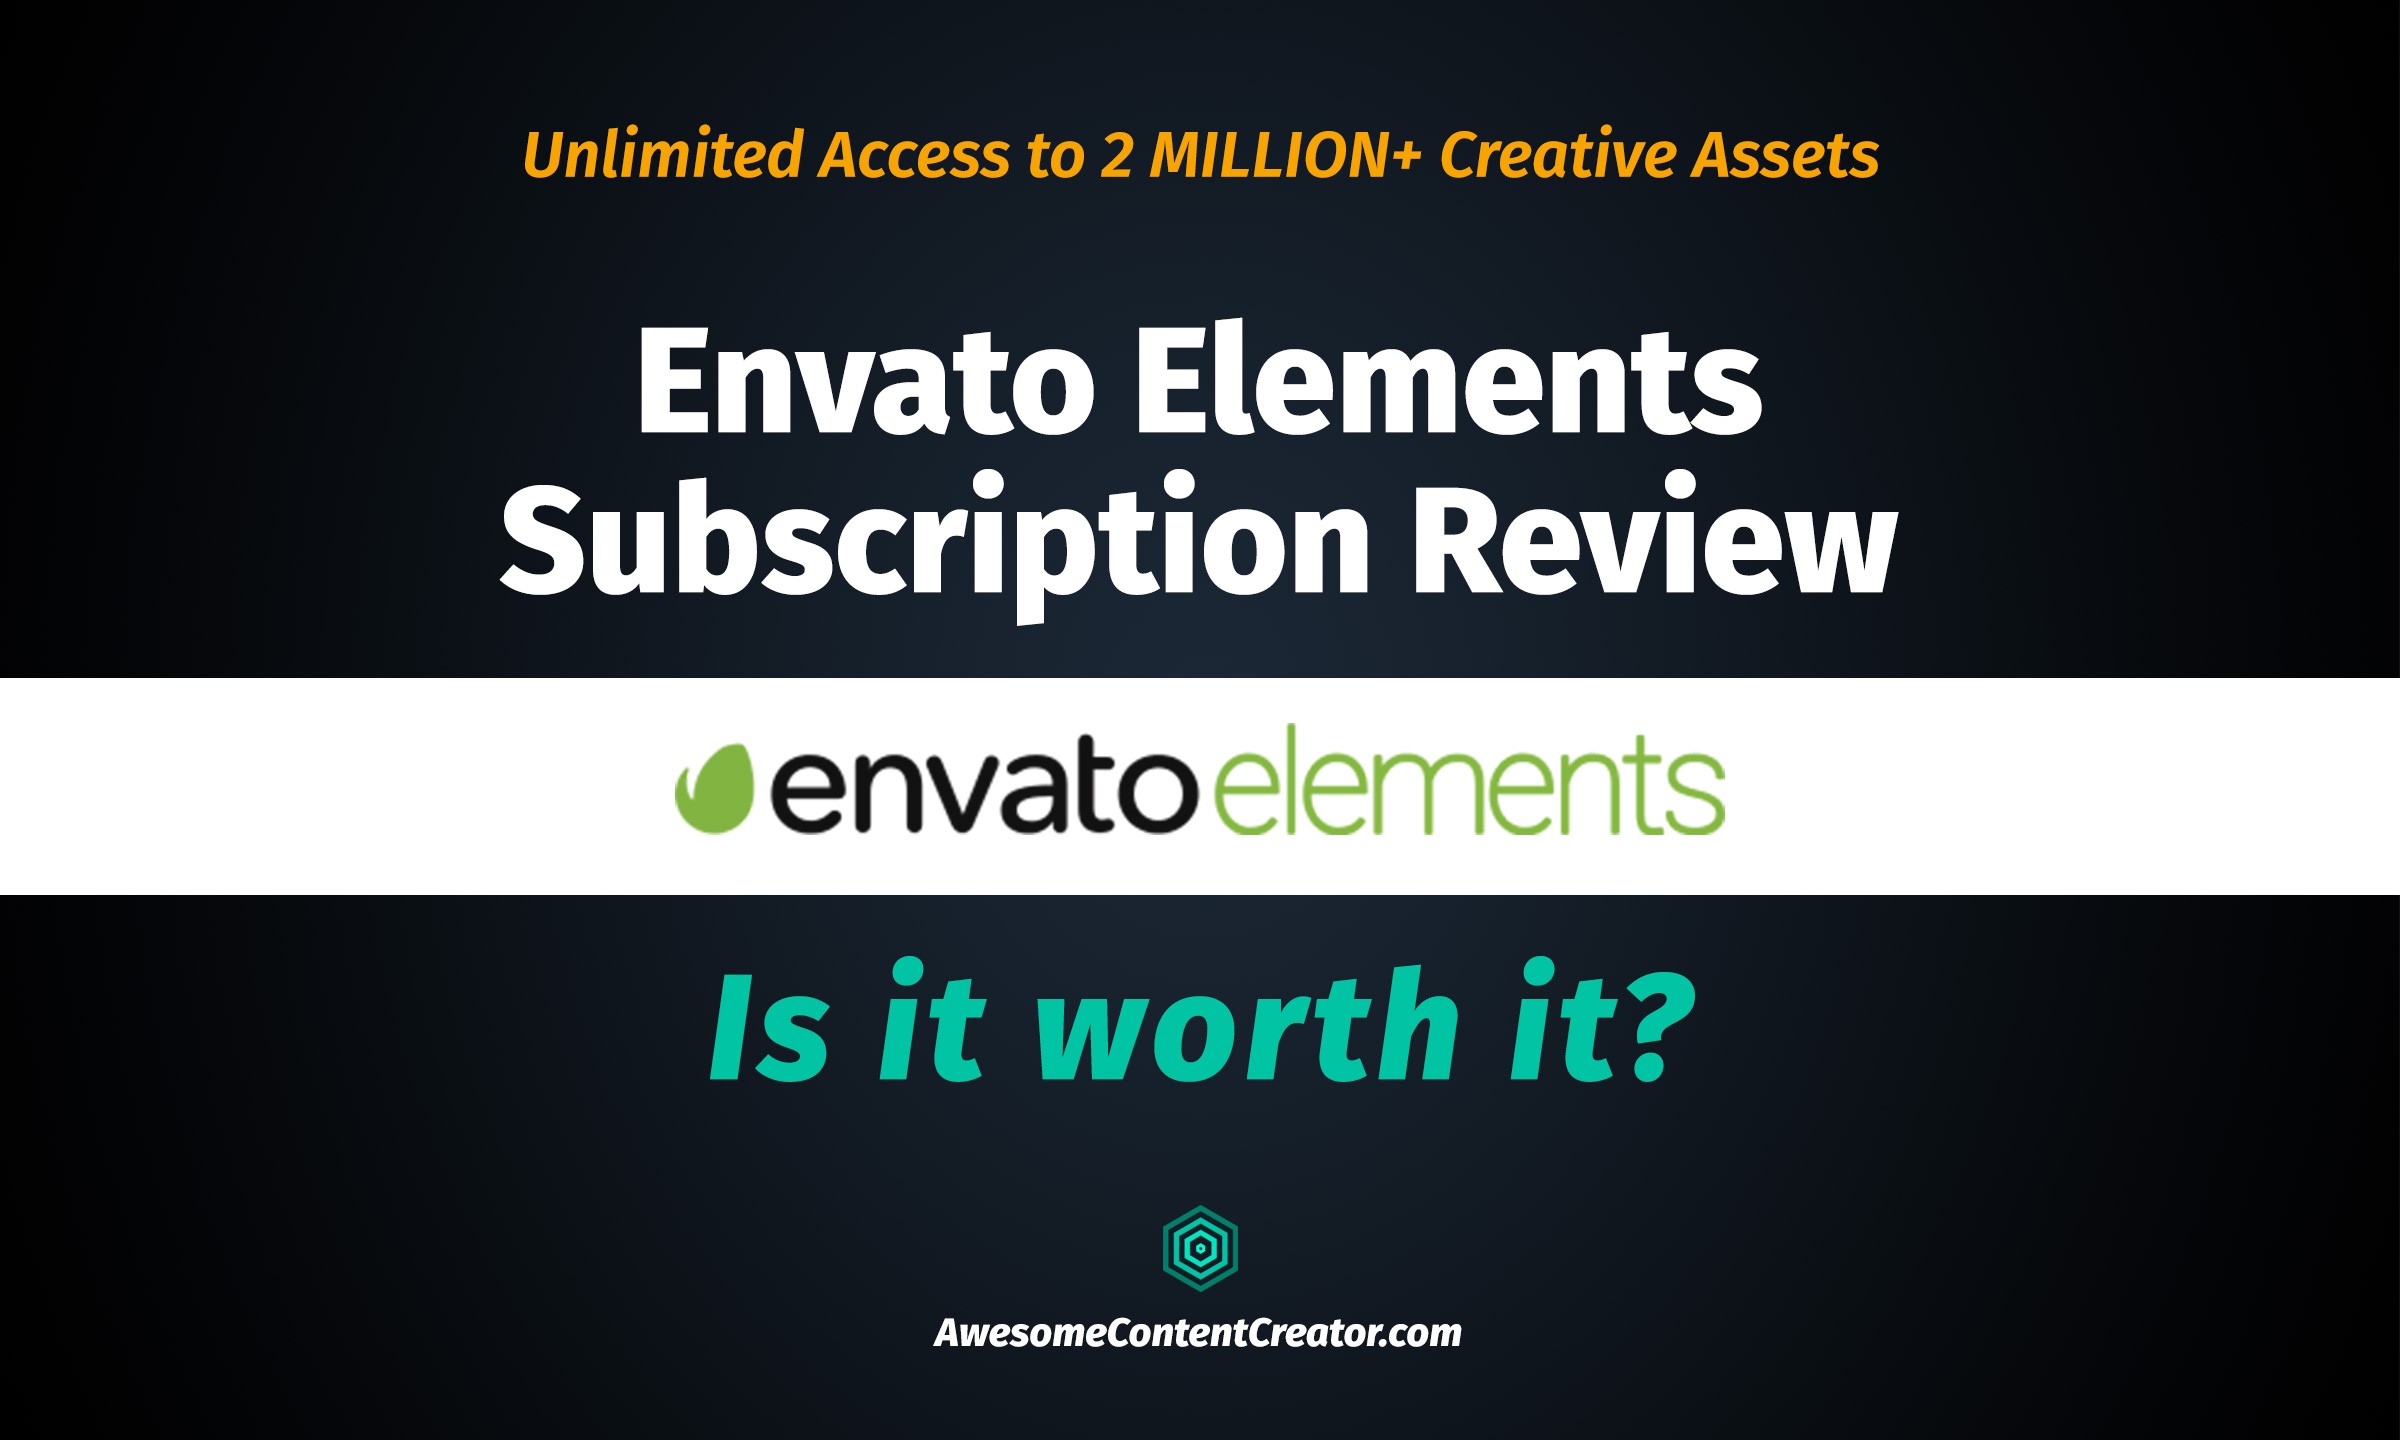 envato elements subscription review 2020 is envato elements worth it?